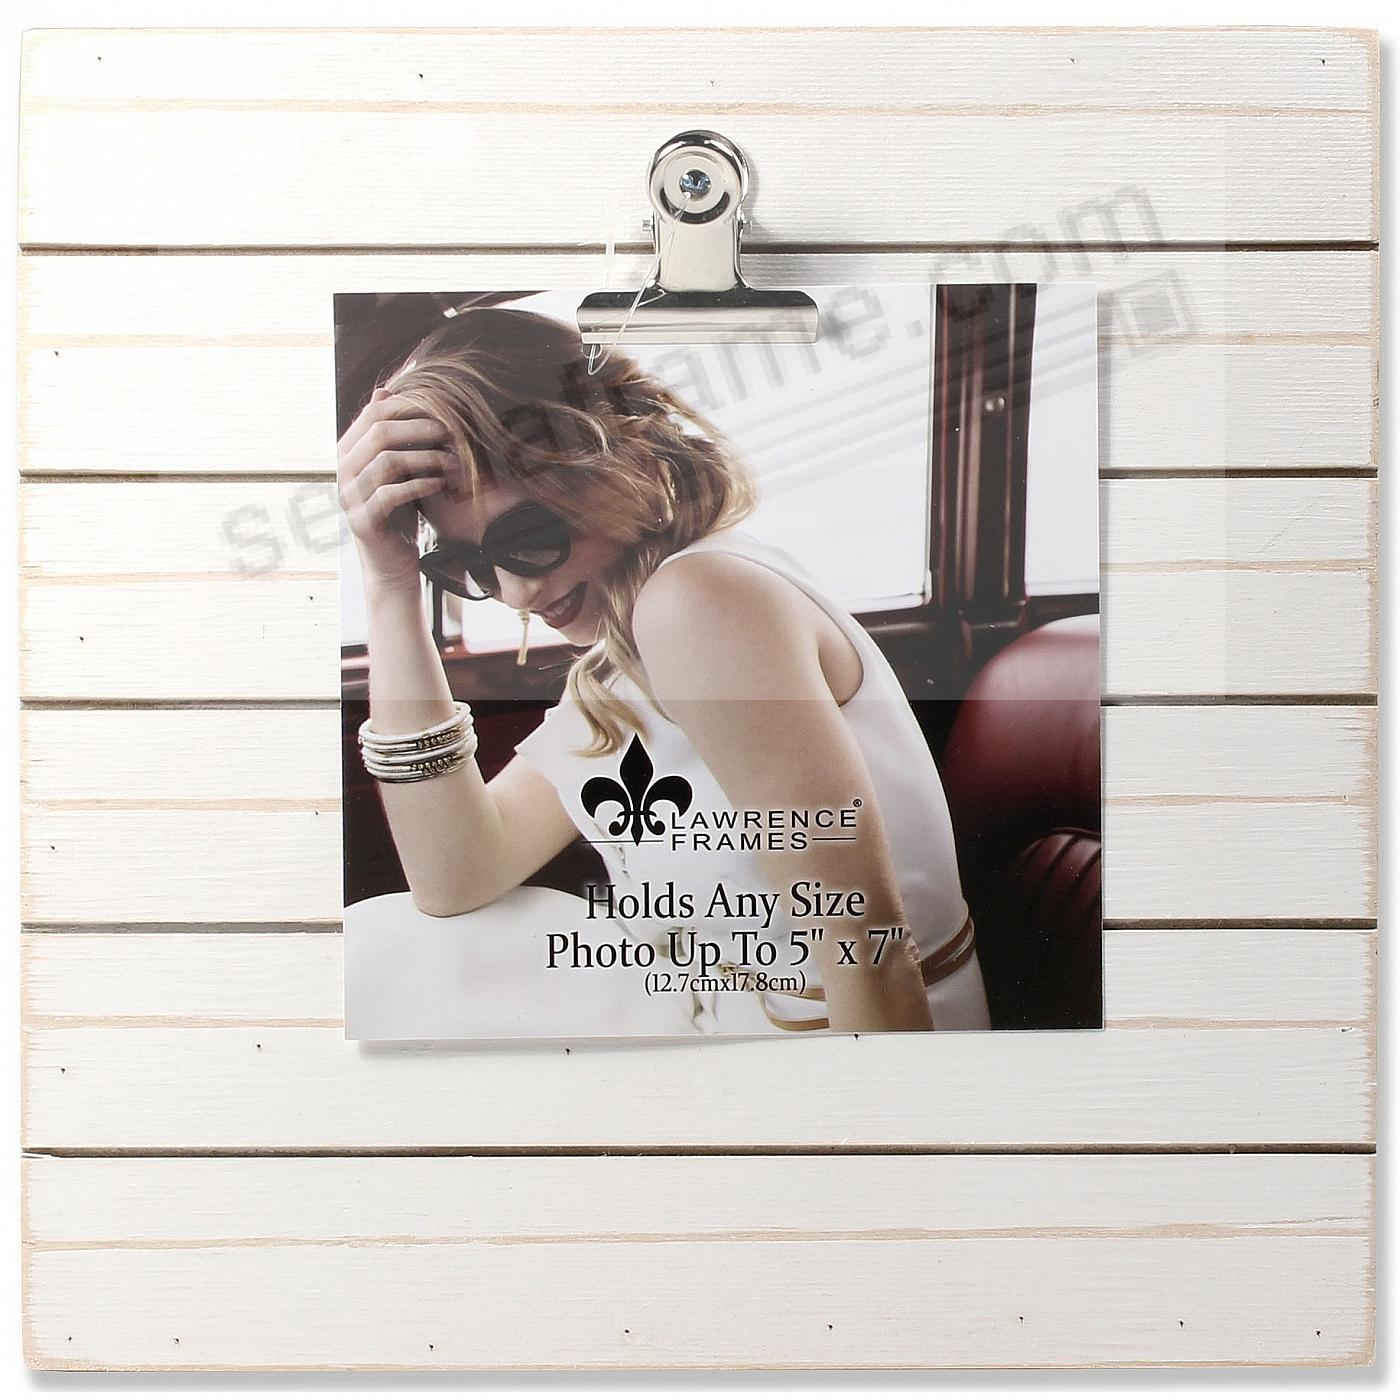 9x9 Weathered White Woodlands Clip Board Frame - Holds Up to 5x7 Photo by Lawrence®